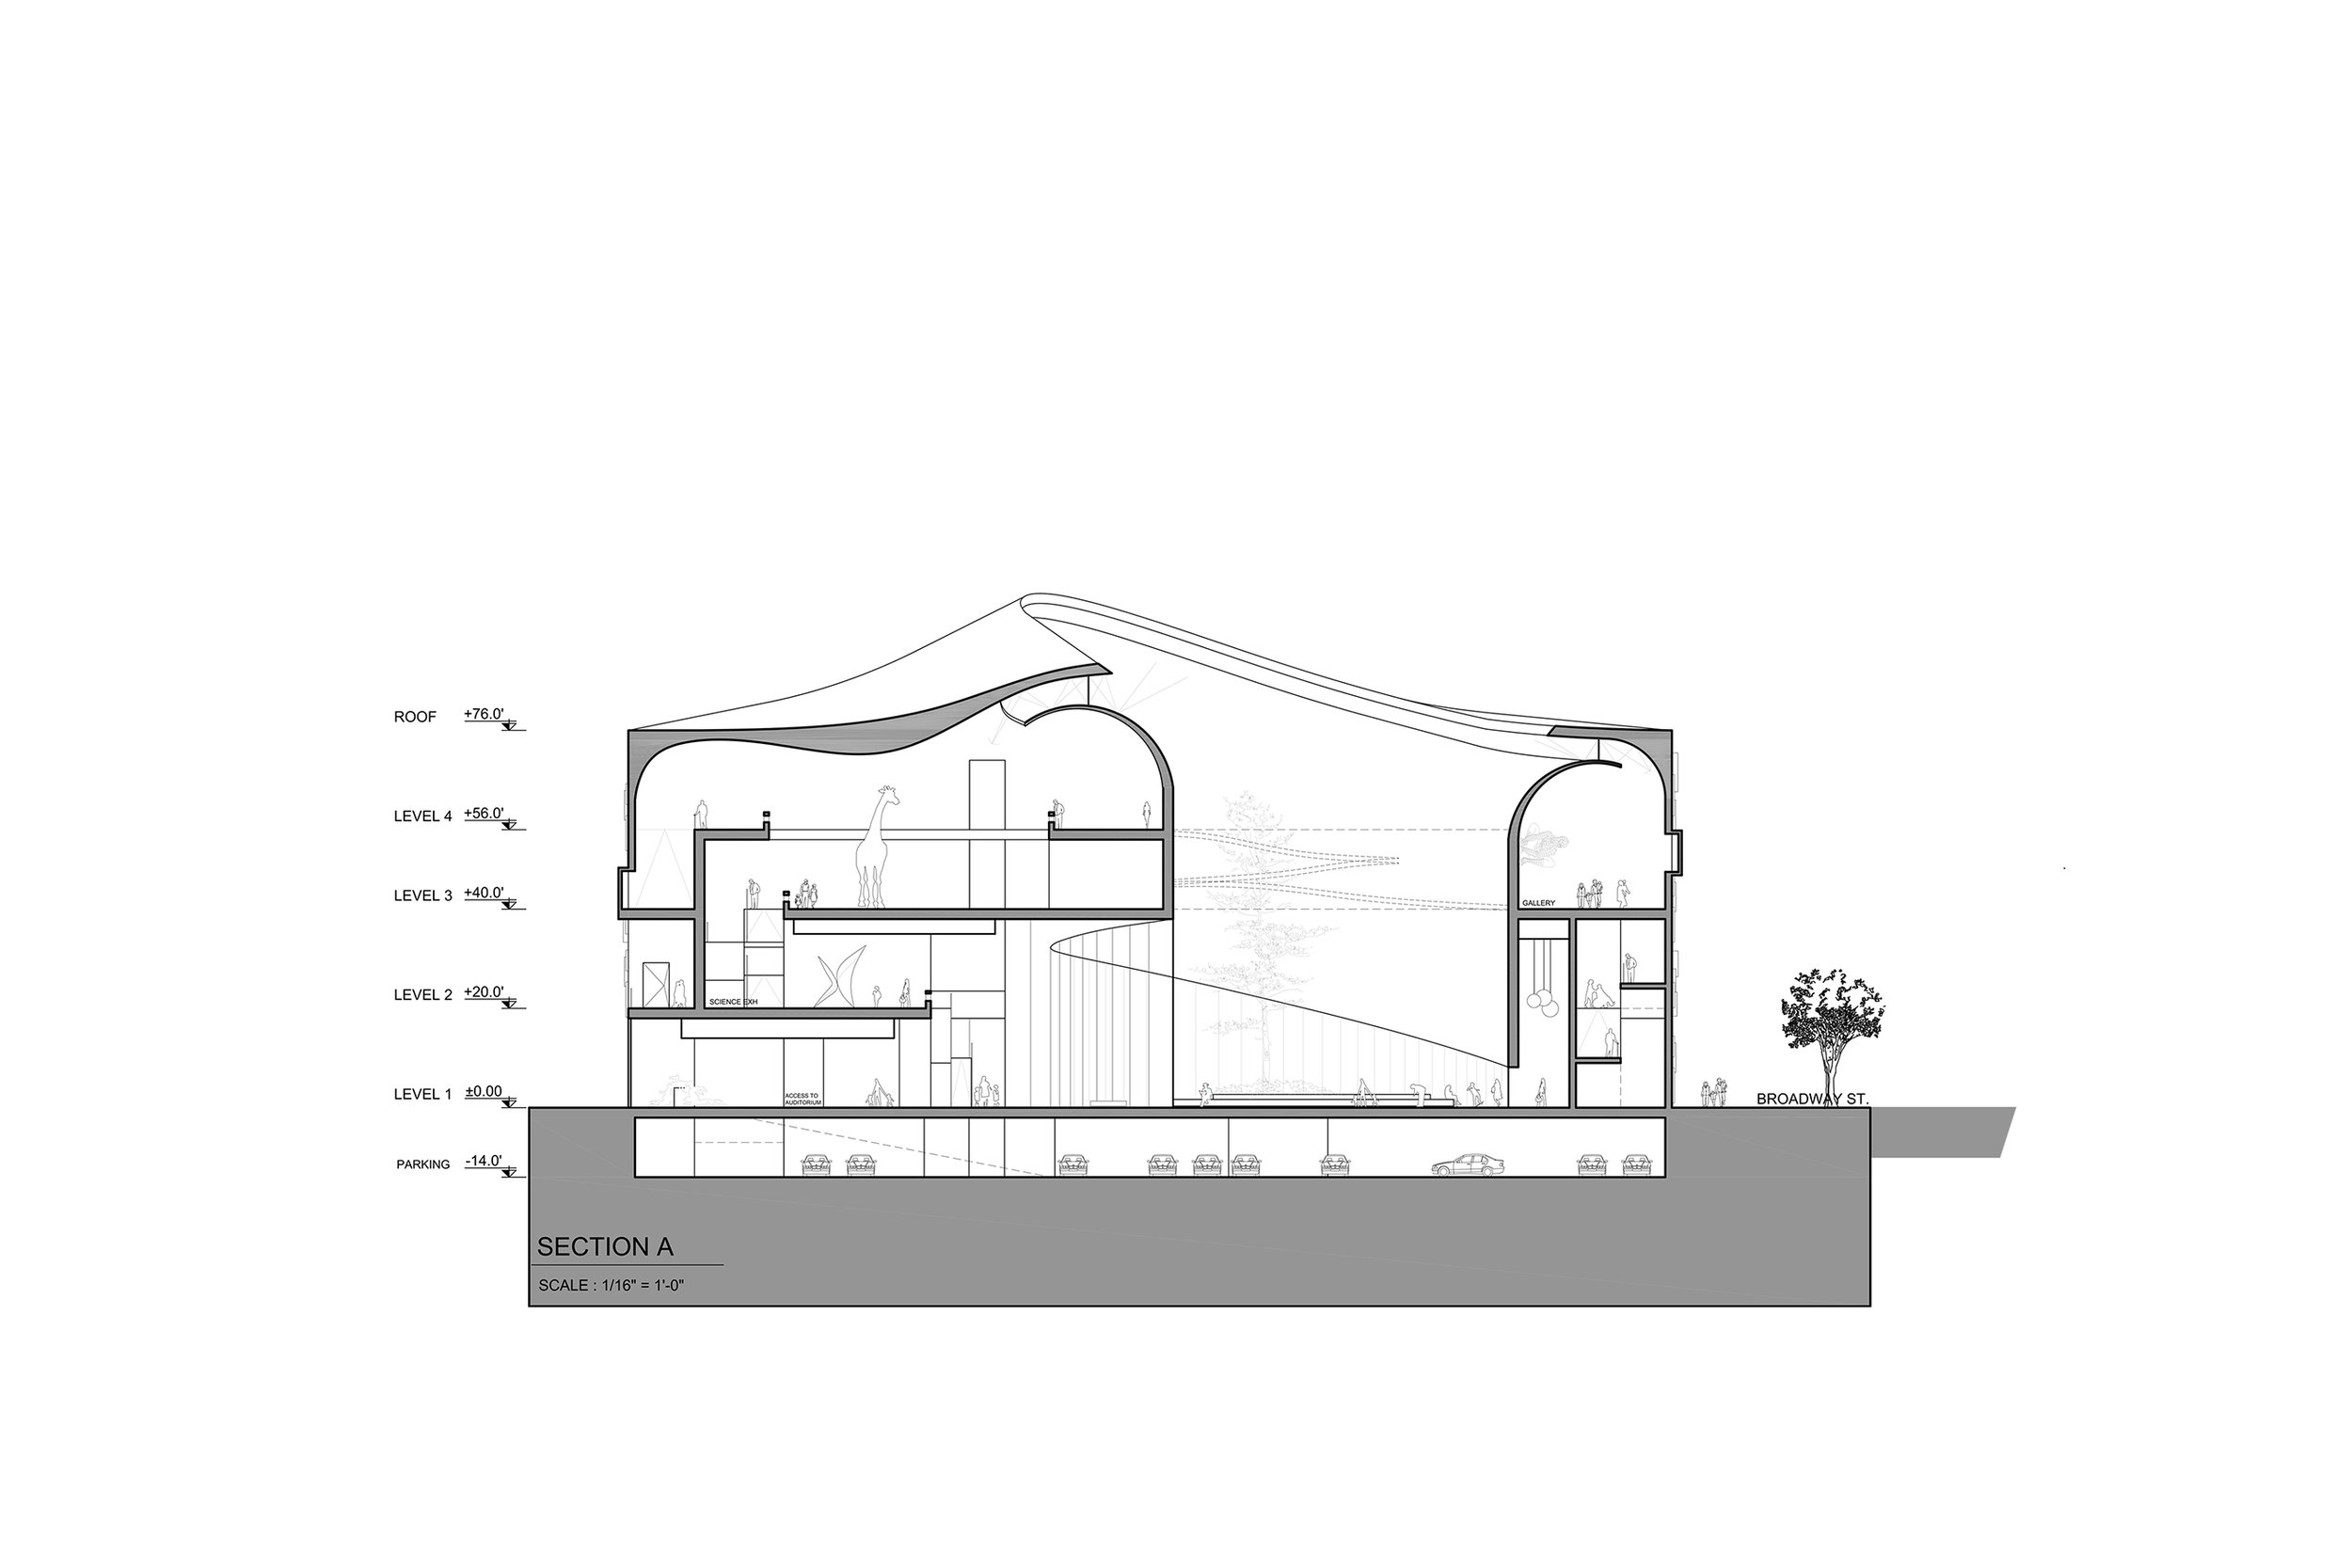 00 Hadilou Architecture_Section A LCM.jpg